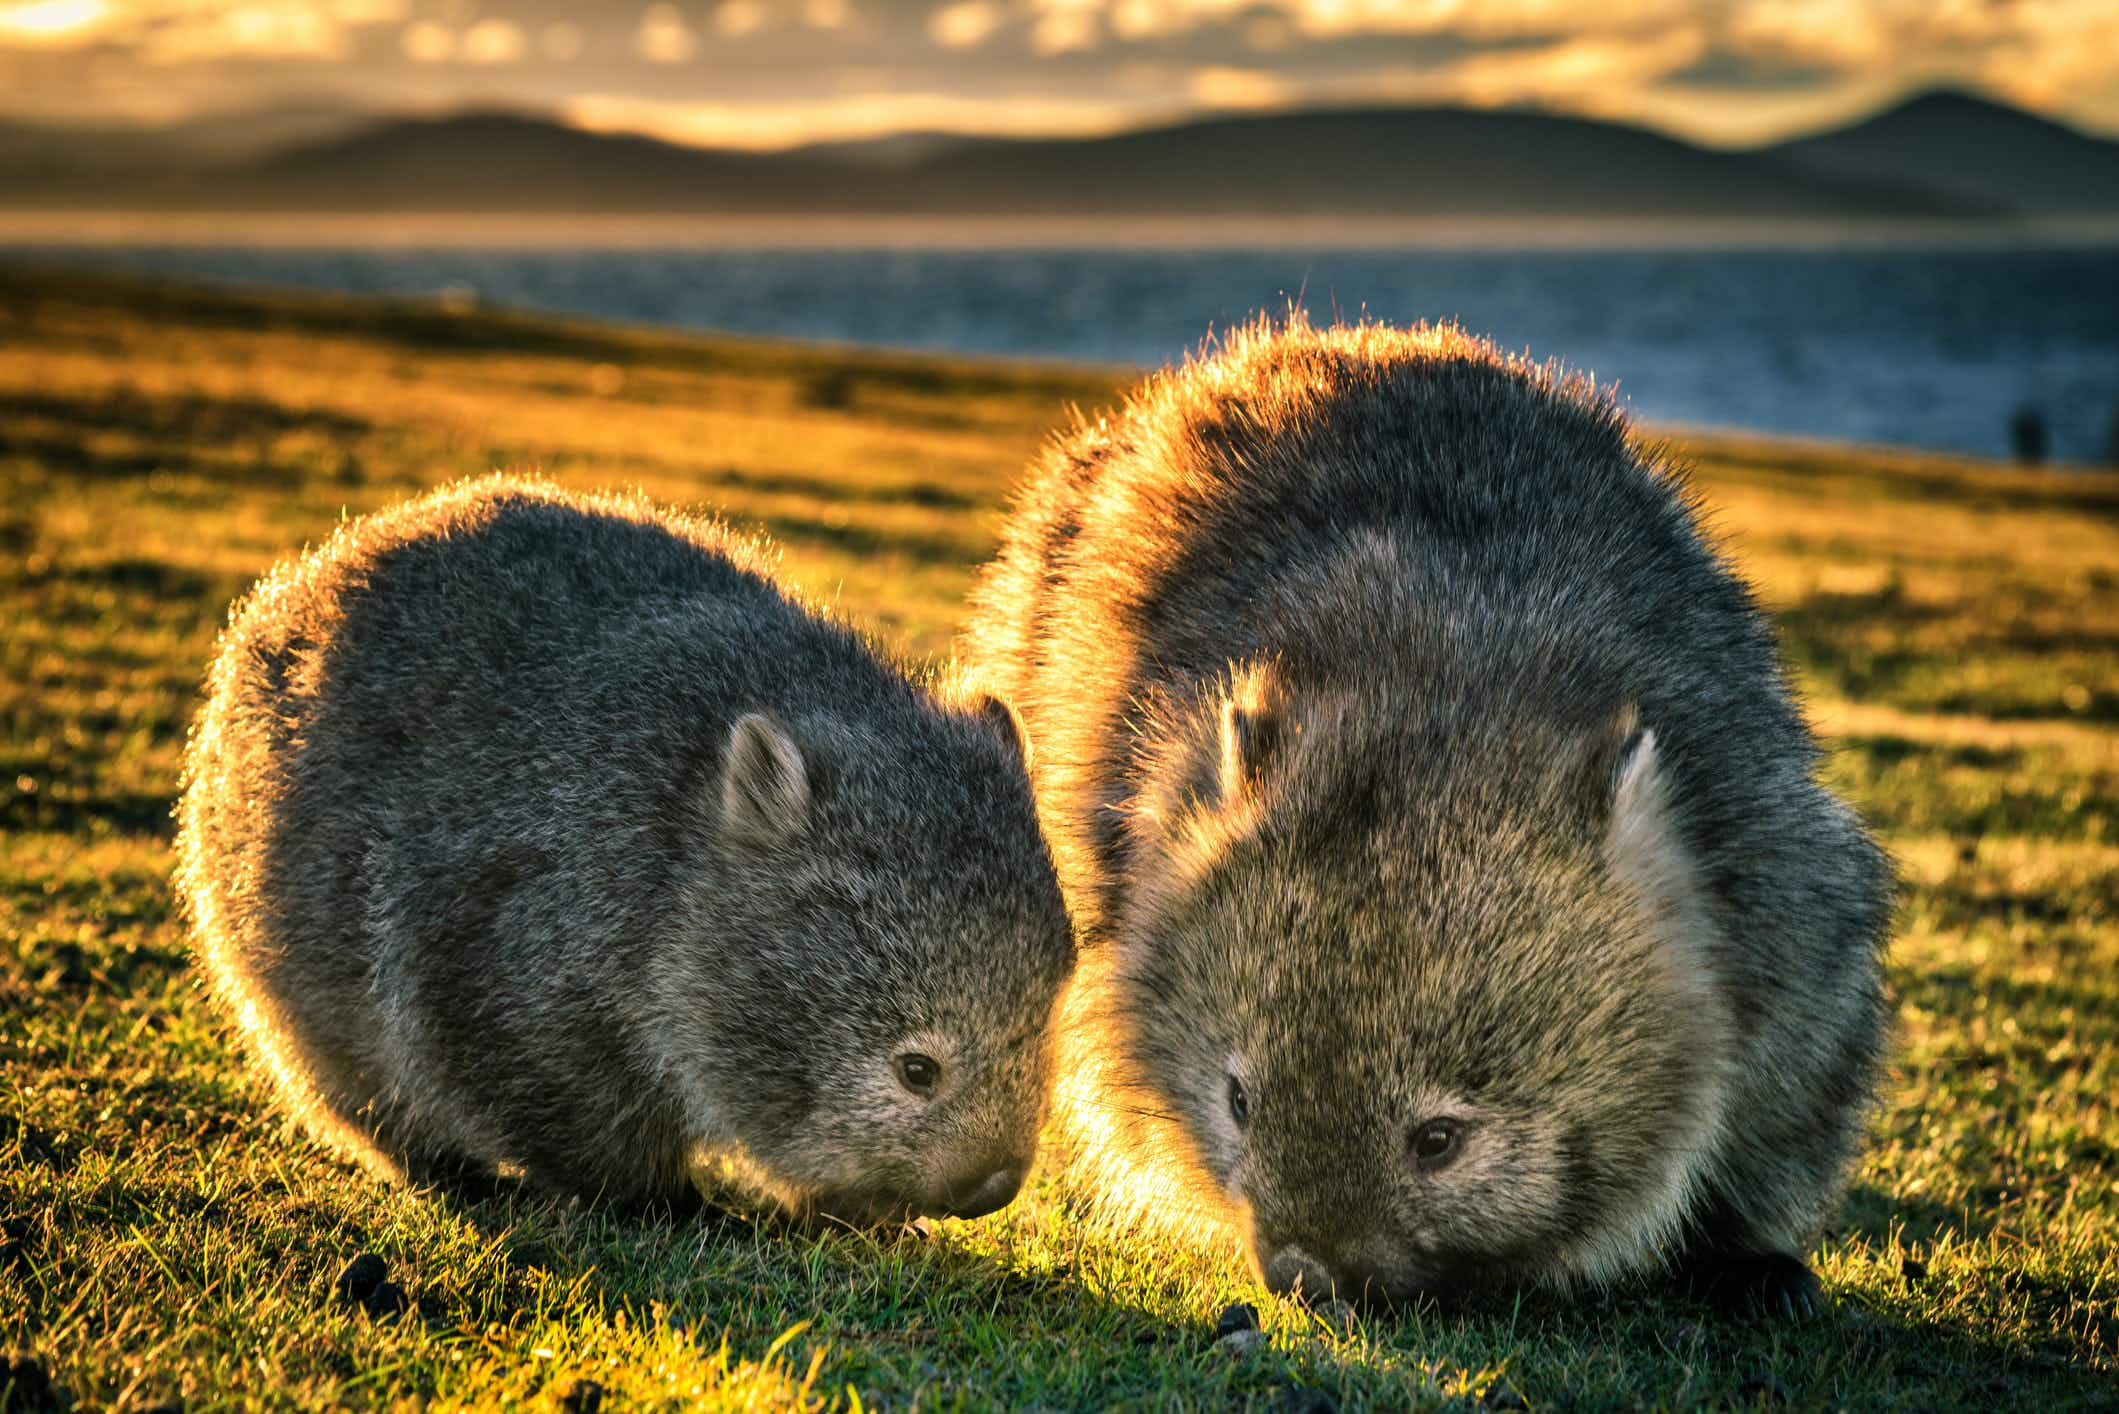 Stop chasing wombats for selfies, urges this Tasmanian island